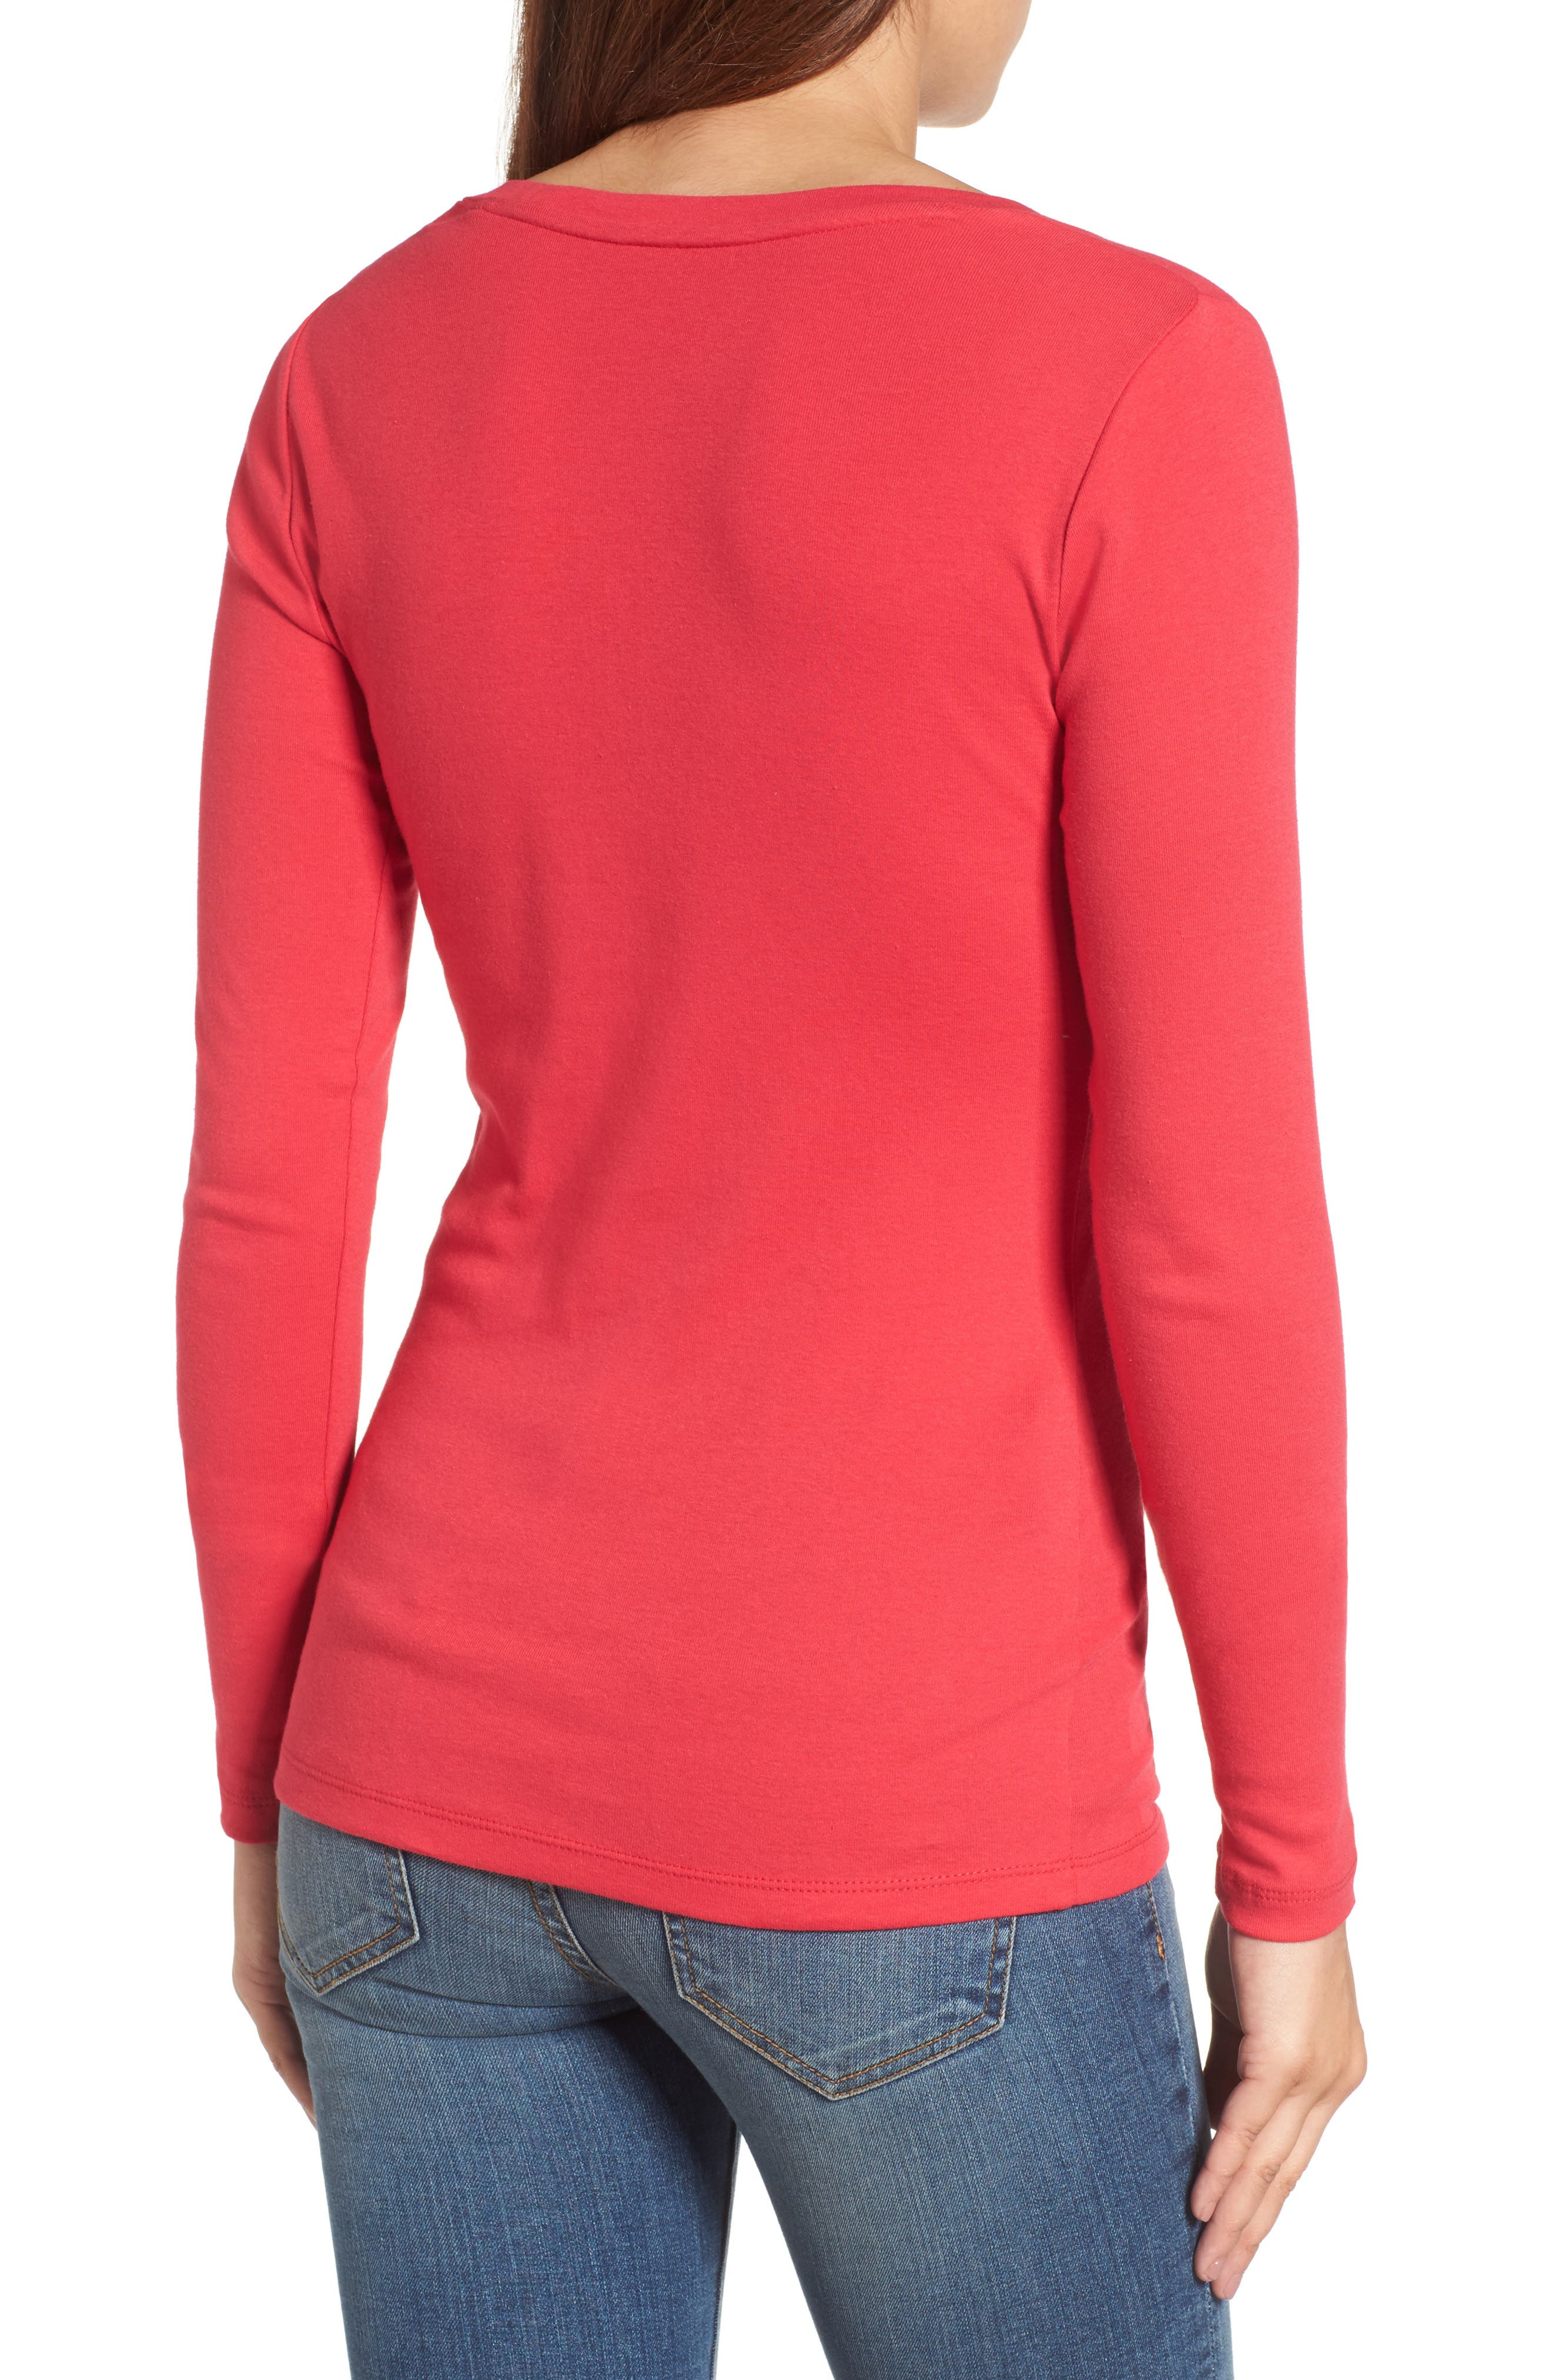 'Melody' Long Sleeve Scoop Neck Tee,                             Alternate thumbnail 2, color,                             Red Barberry